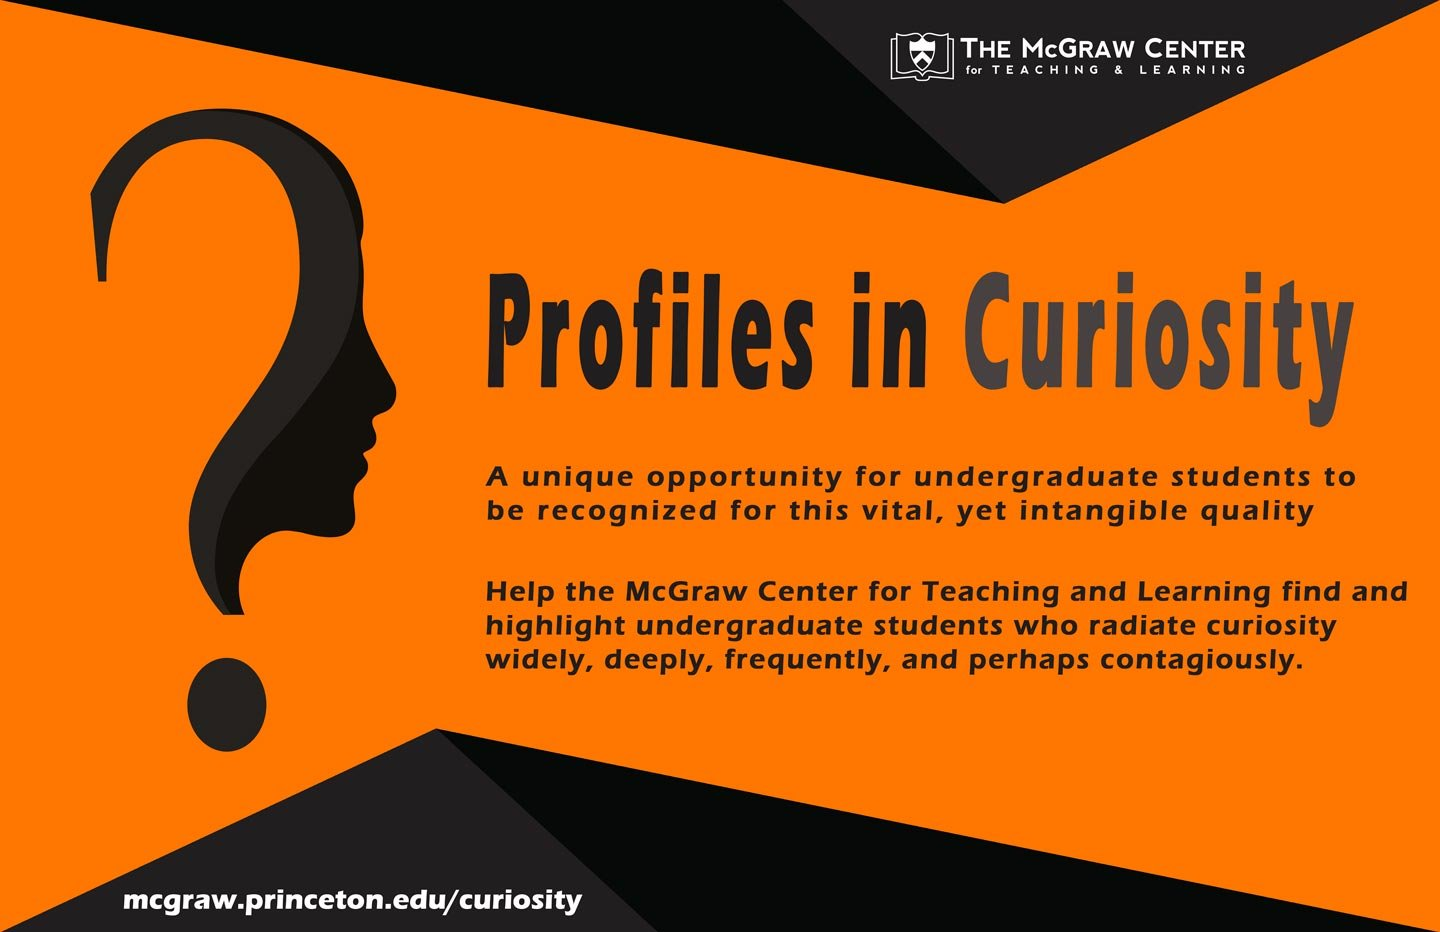 Profiles in Curiosity